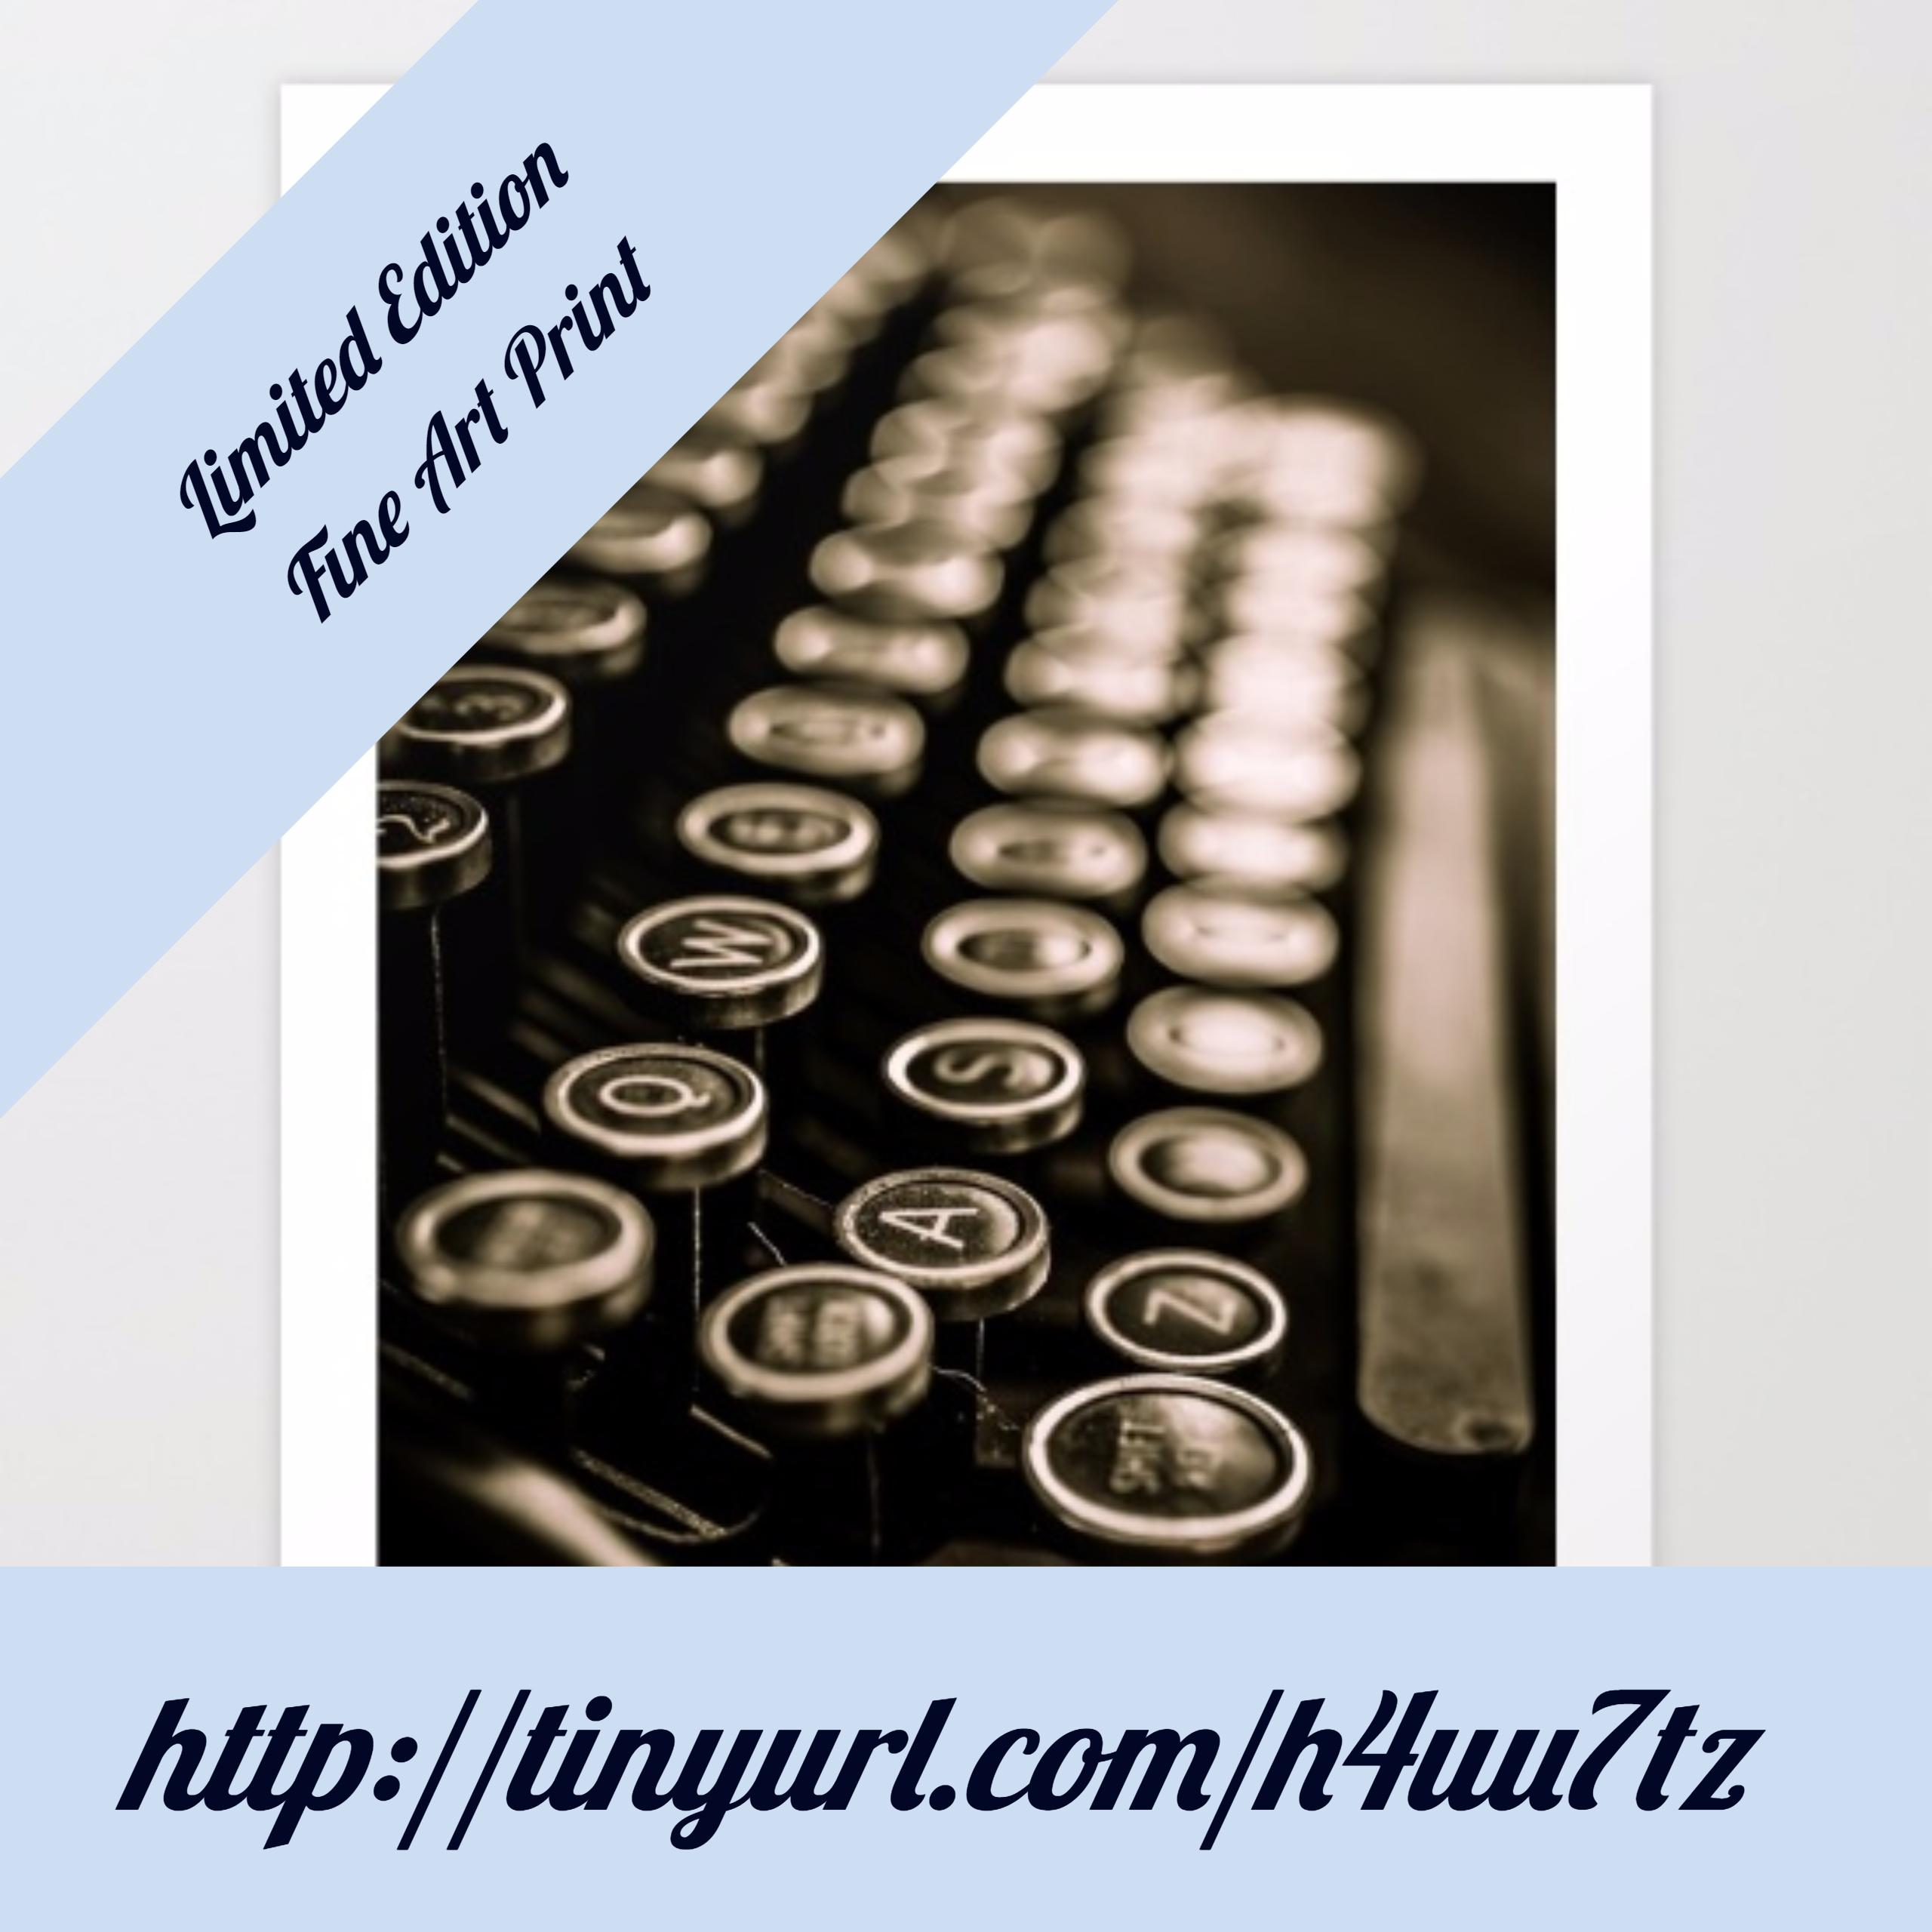 New Limited Edition Release Vintage Typewriter